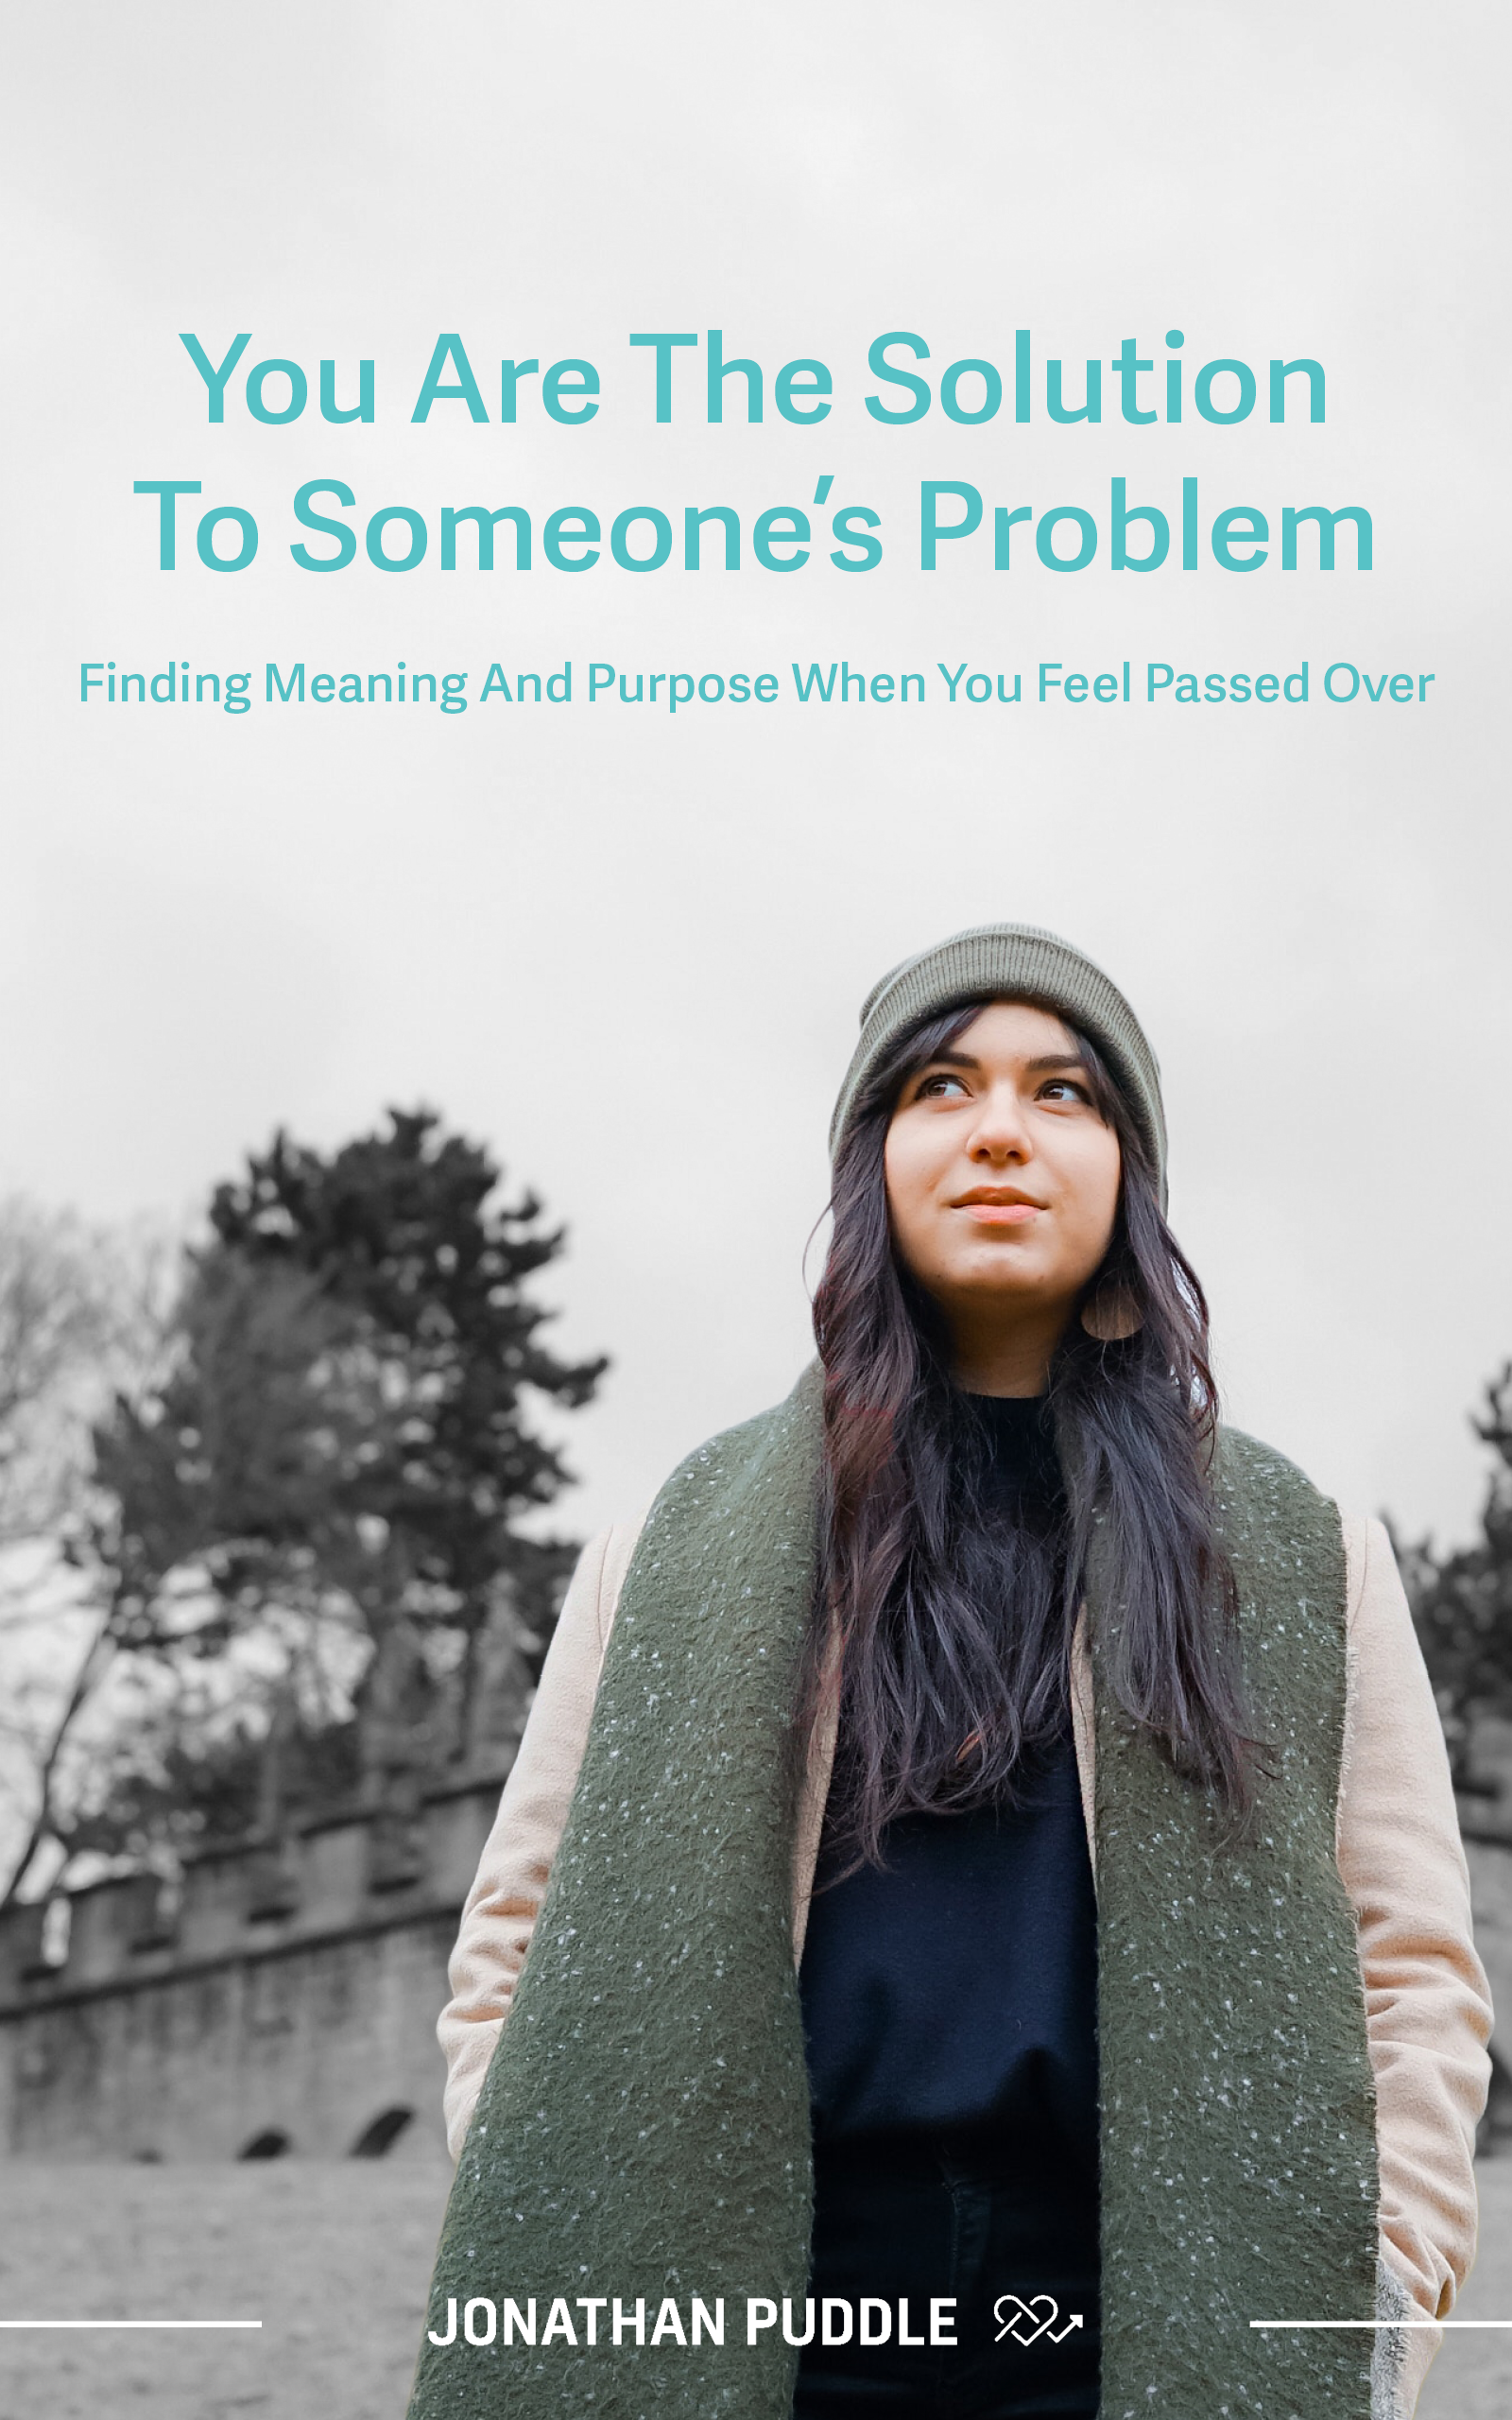 You are the solution to someone's problem